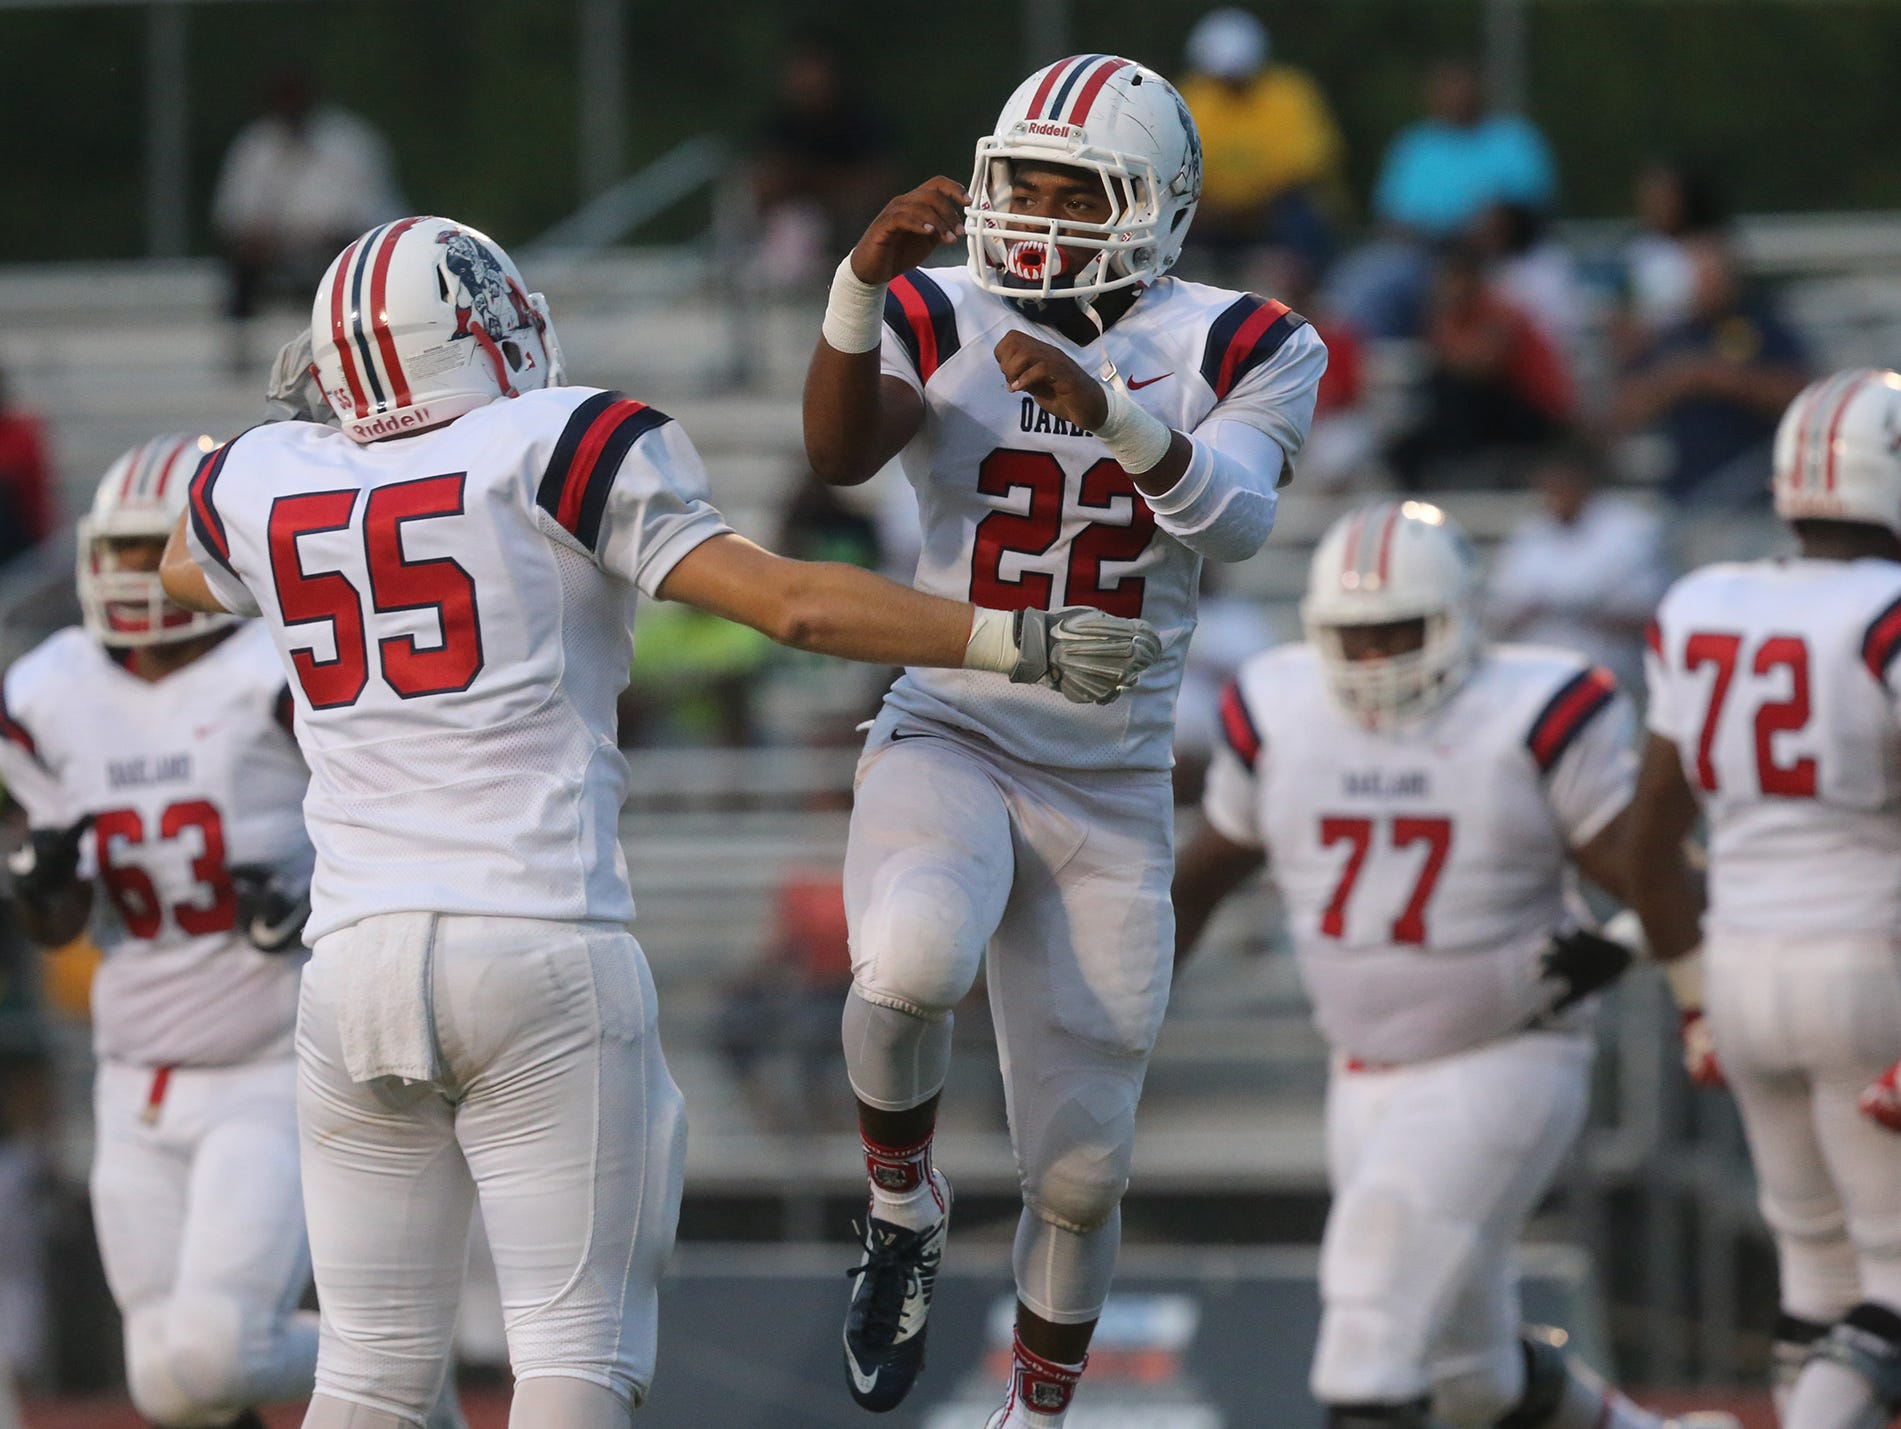 Oakland's Michael Roper (22) and Thadd Chapman (55) celebrate Oakland's first touchdown of the night against Hillsboro on Friday, Aug. 26, 2016.